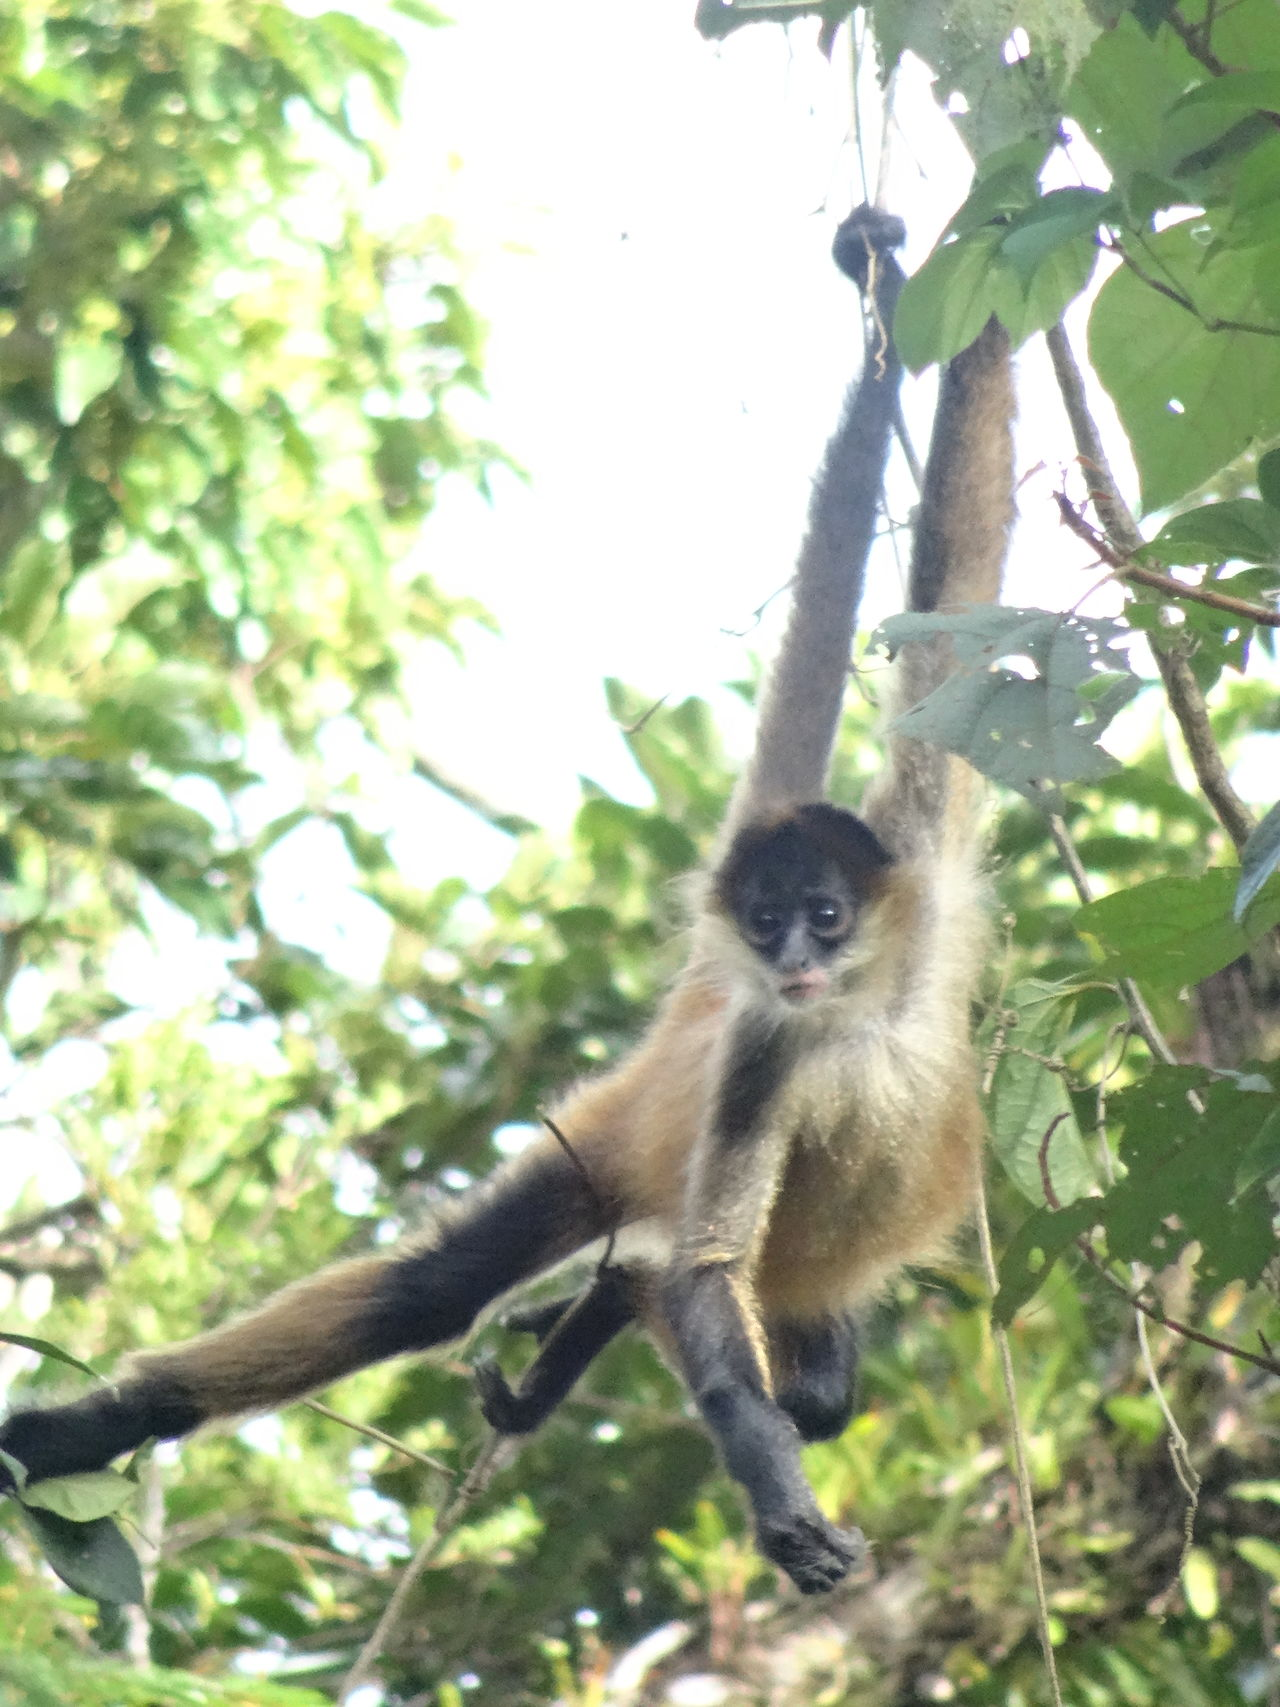 Young monkey in a tree Animal Themes Animals In The Wild Branch Costa Rica Day Hanging Hanging Around Hanging Out Mammal Monkey Nature No People One Animal Outdoors Playing Sitting Tree Wildlife